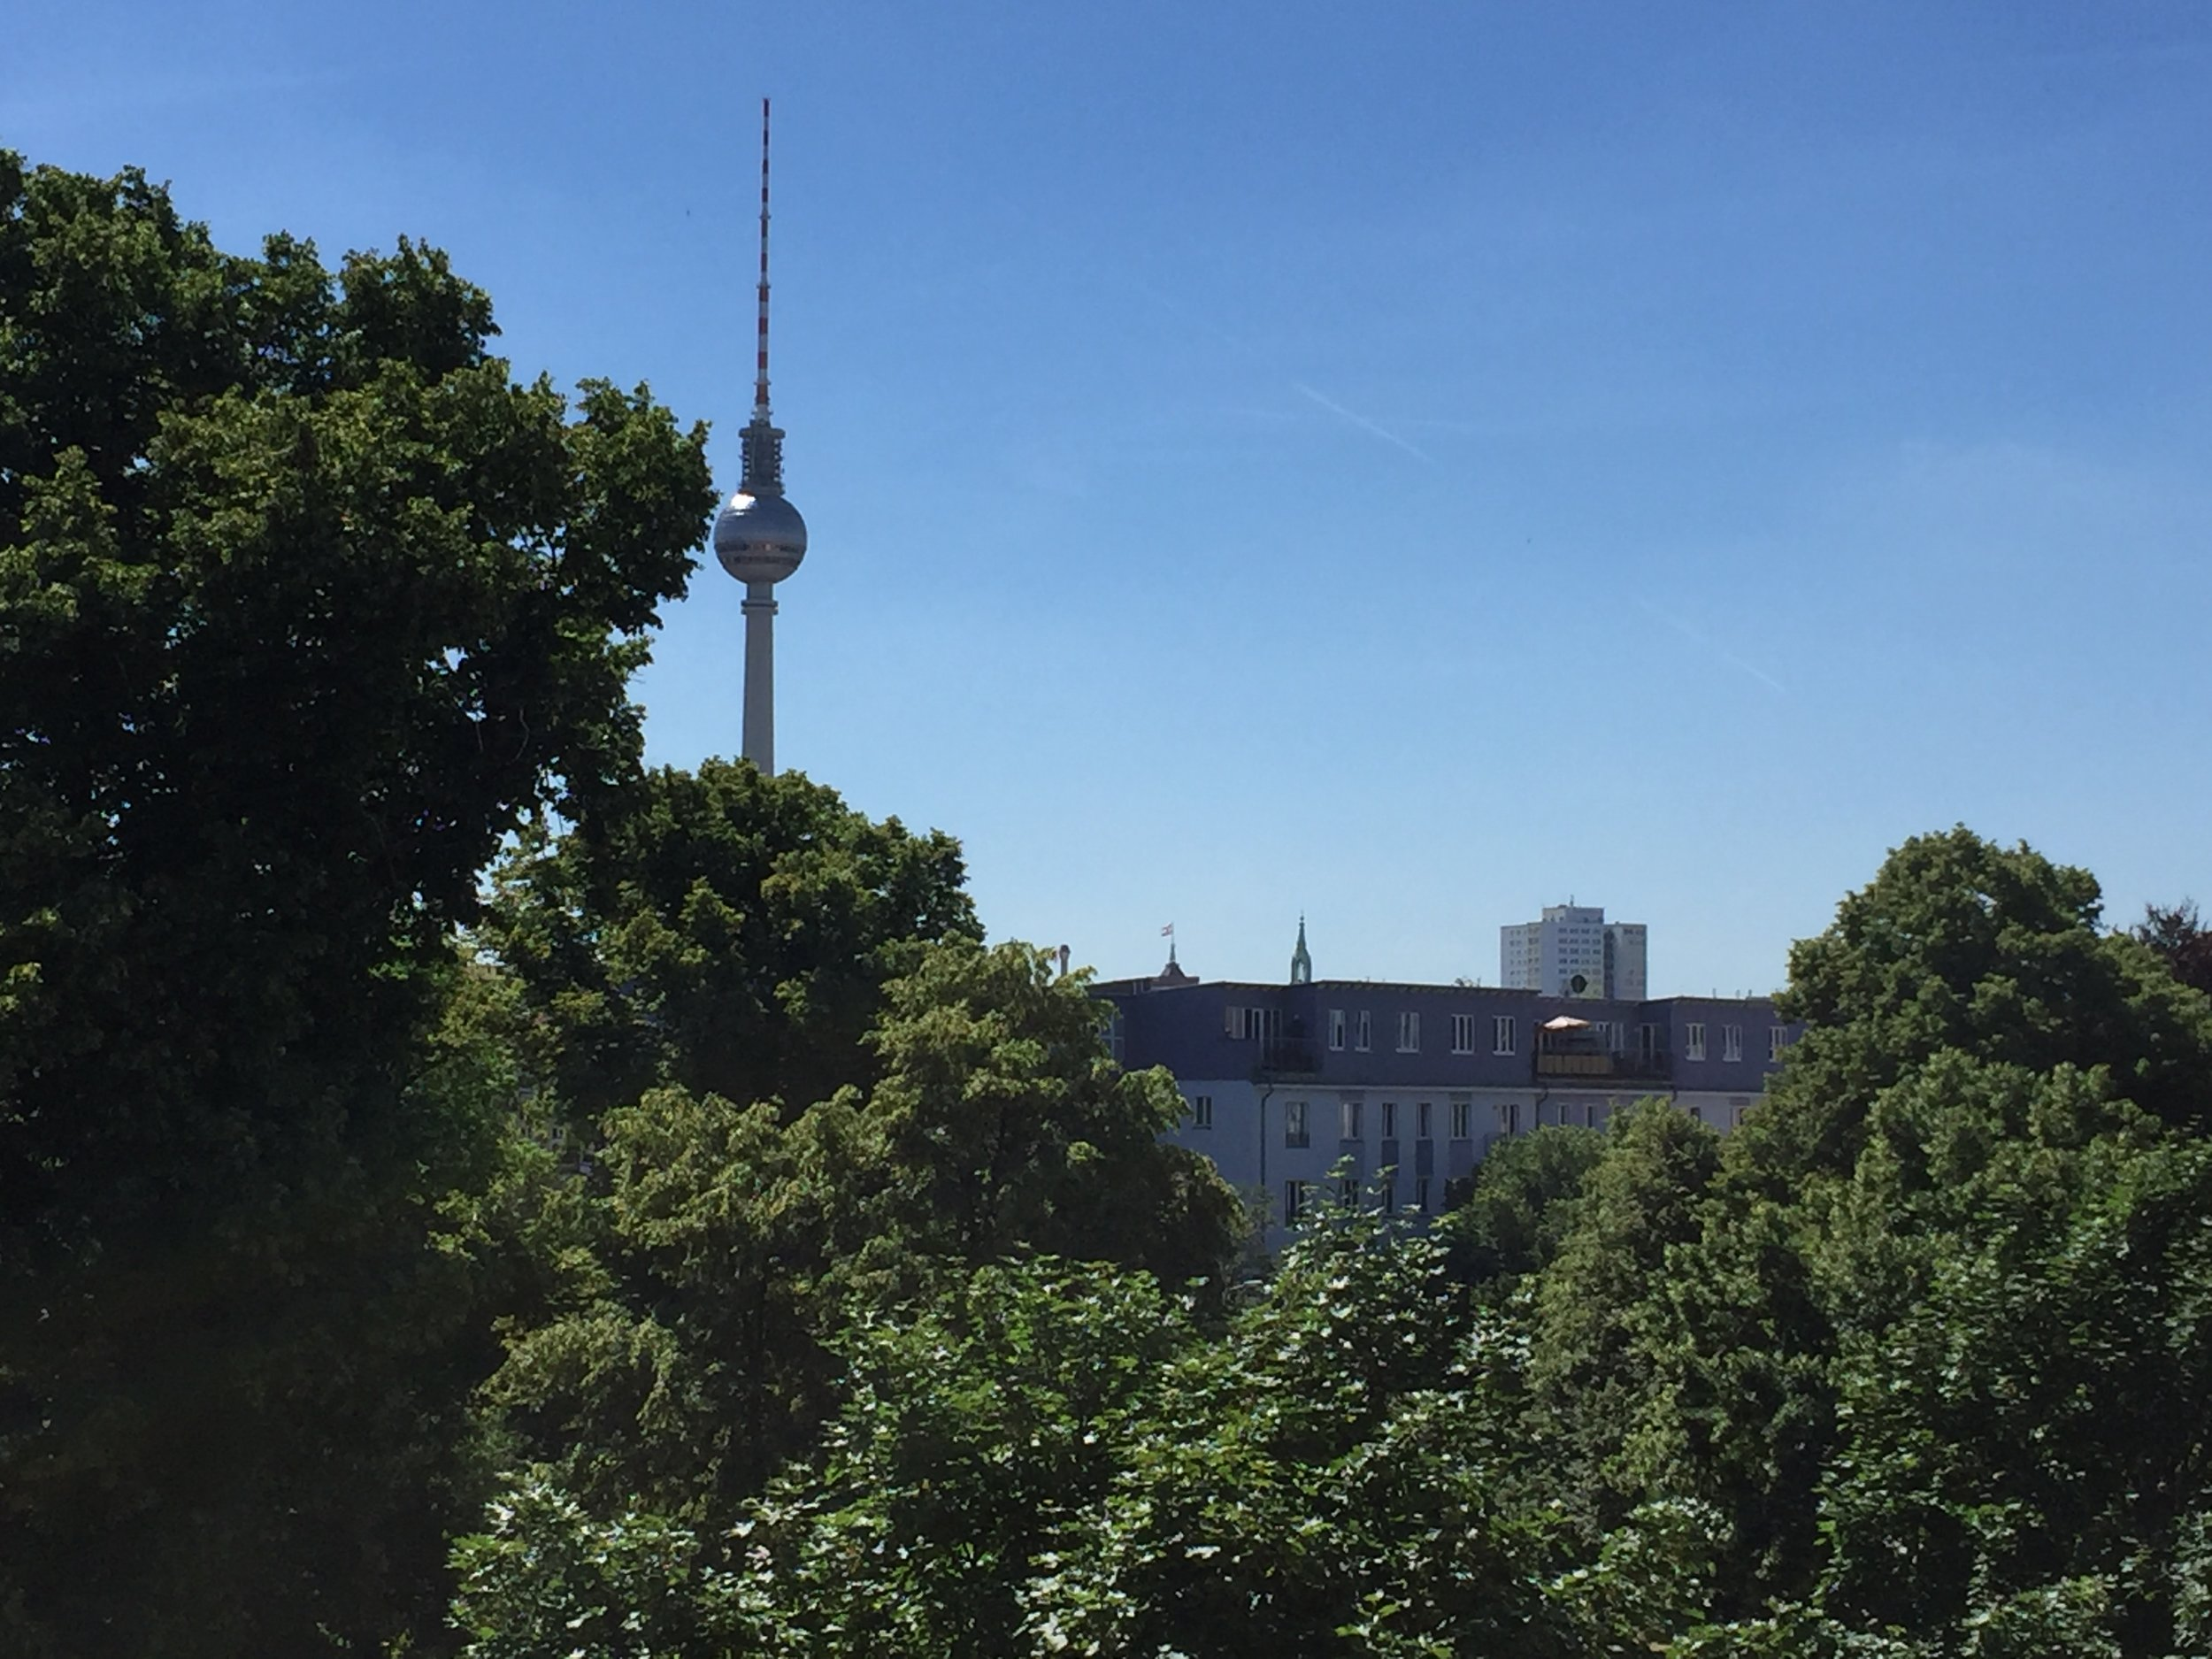 Berlin-Mitte in June.